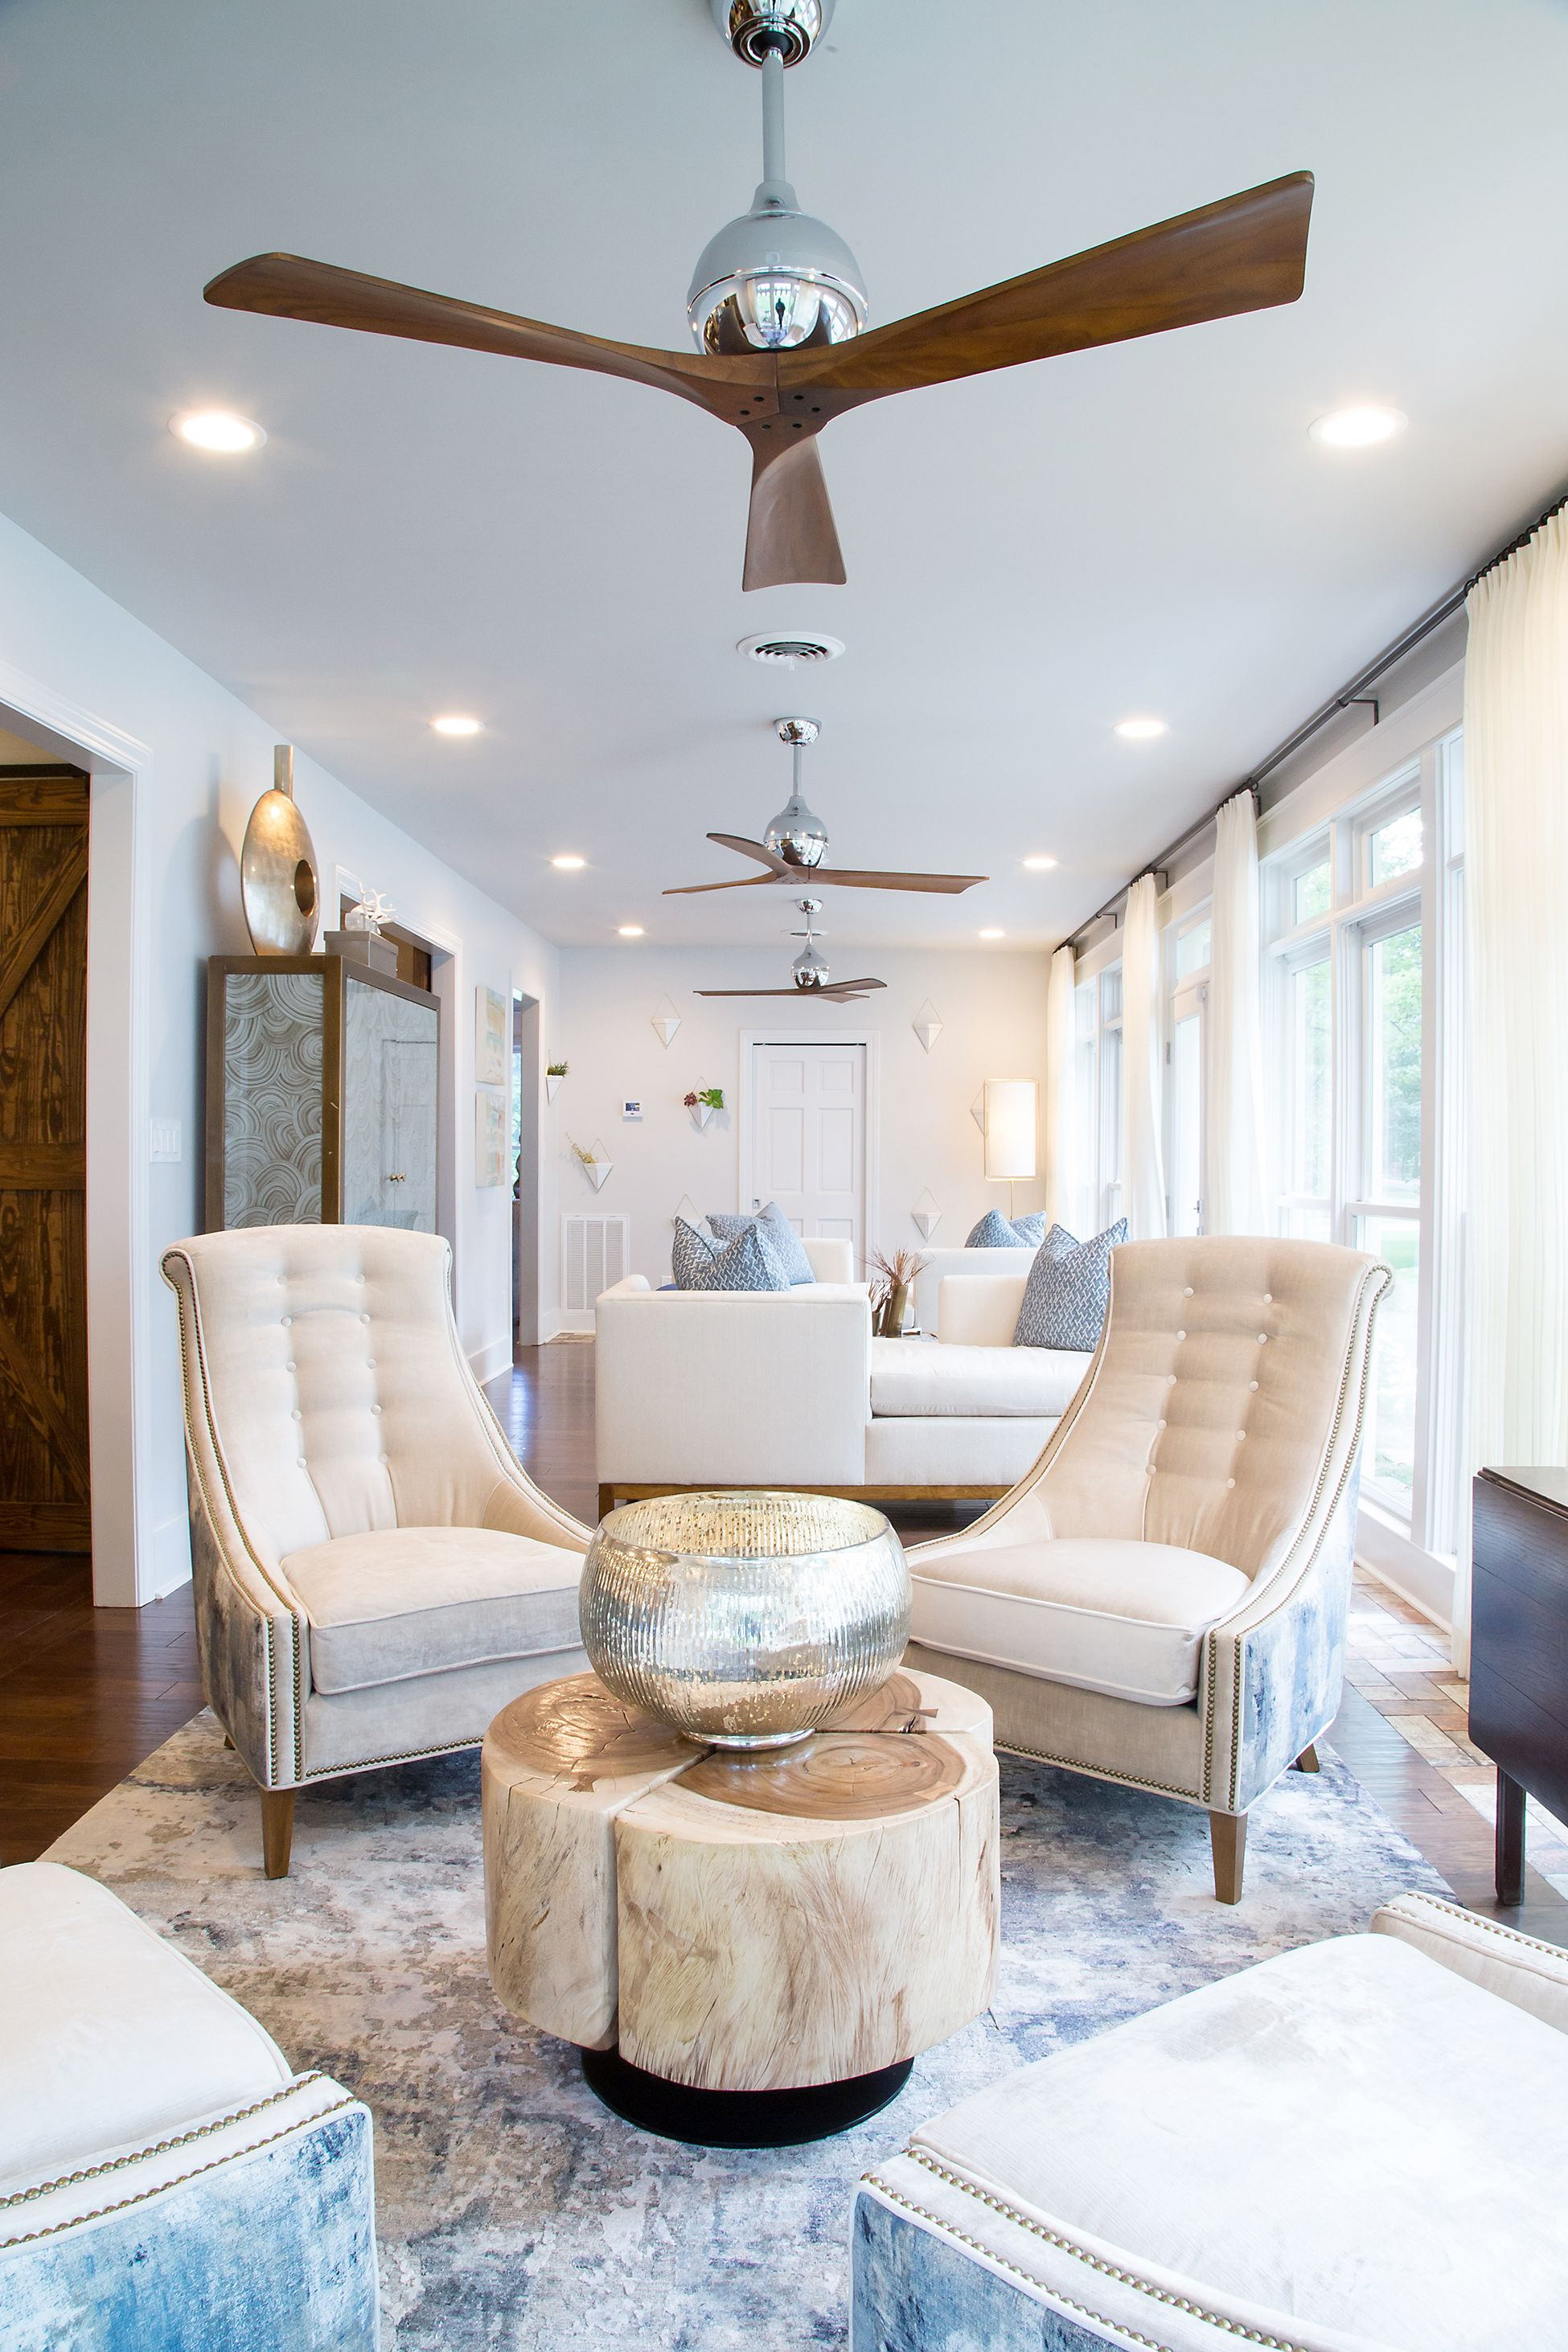 The sitting room everyone wants to be in. Designed by